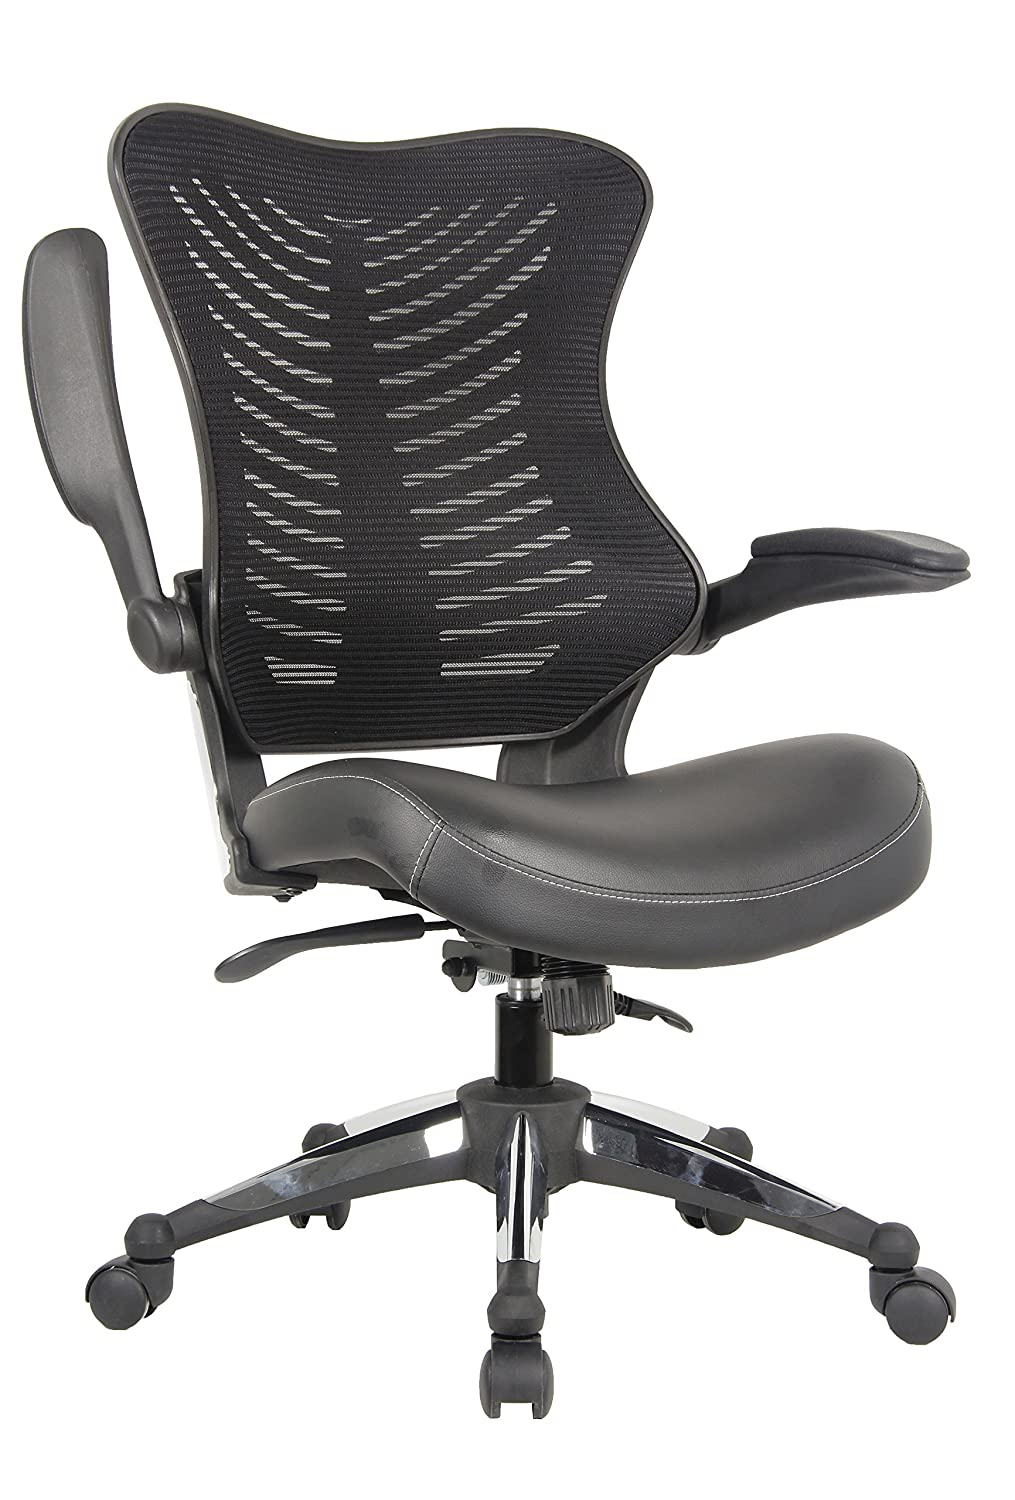 Best Ergonomic fice Chairs Ergonomic Chair Reviews